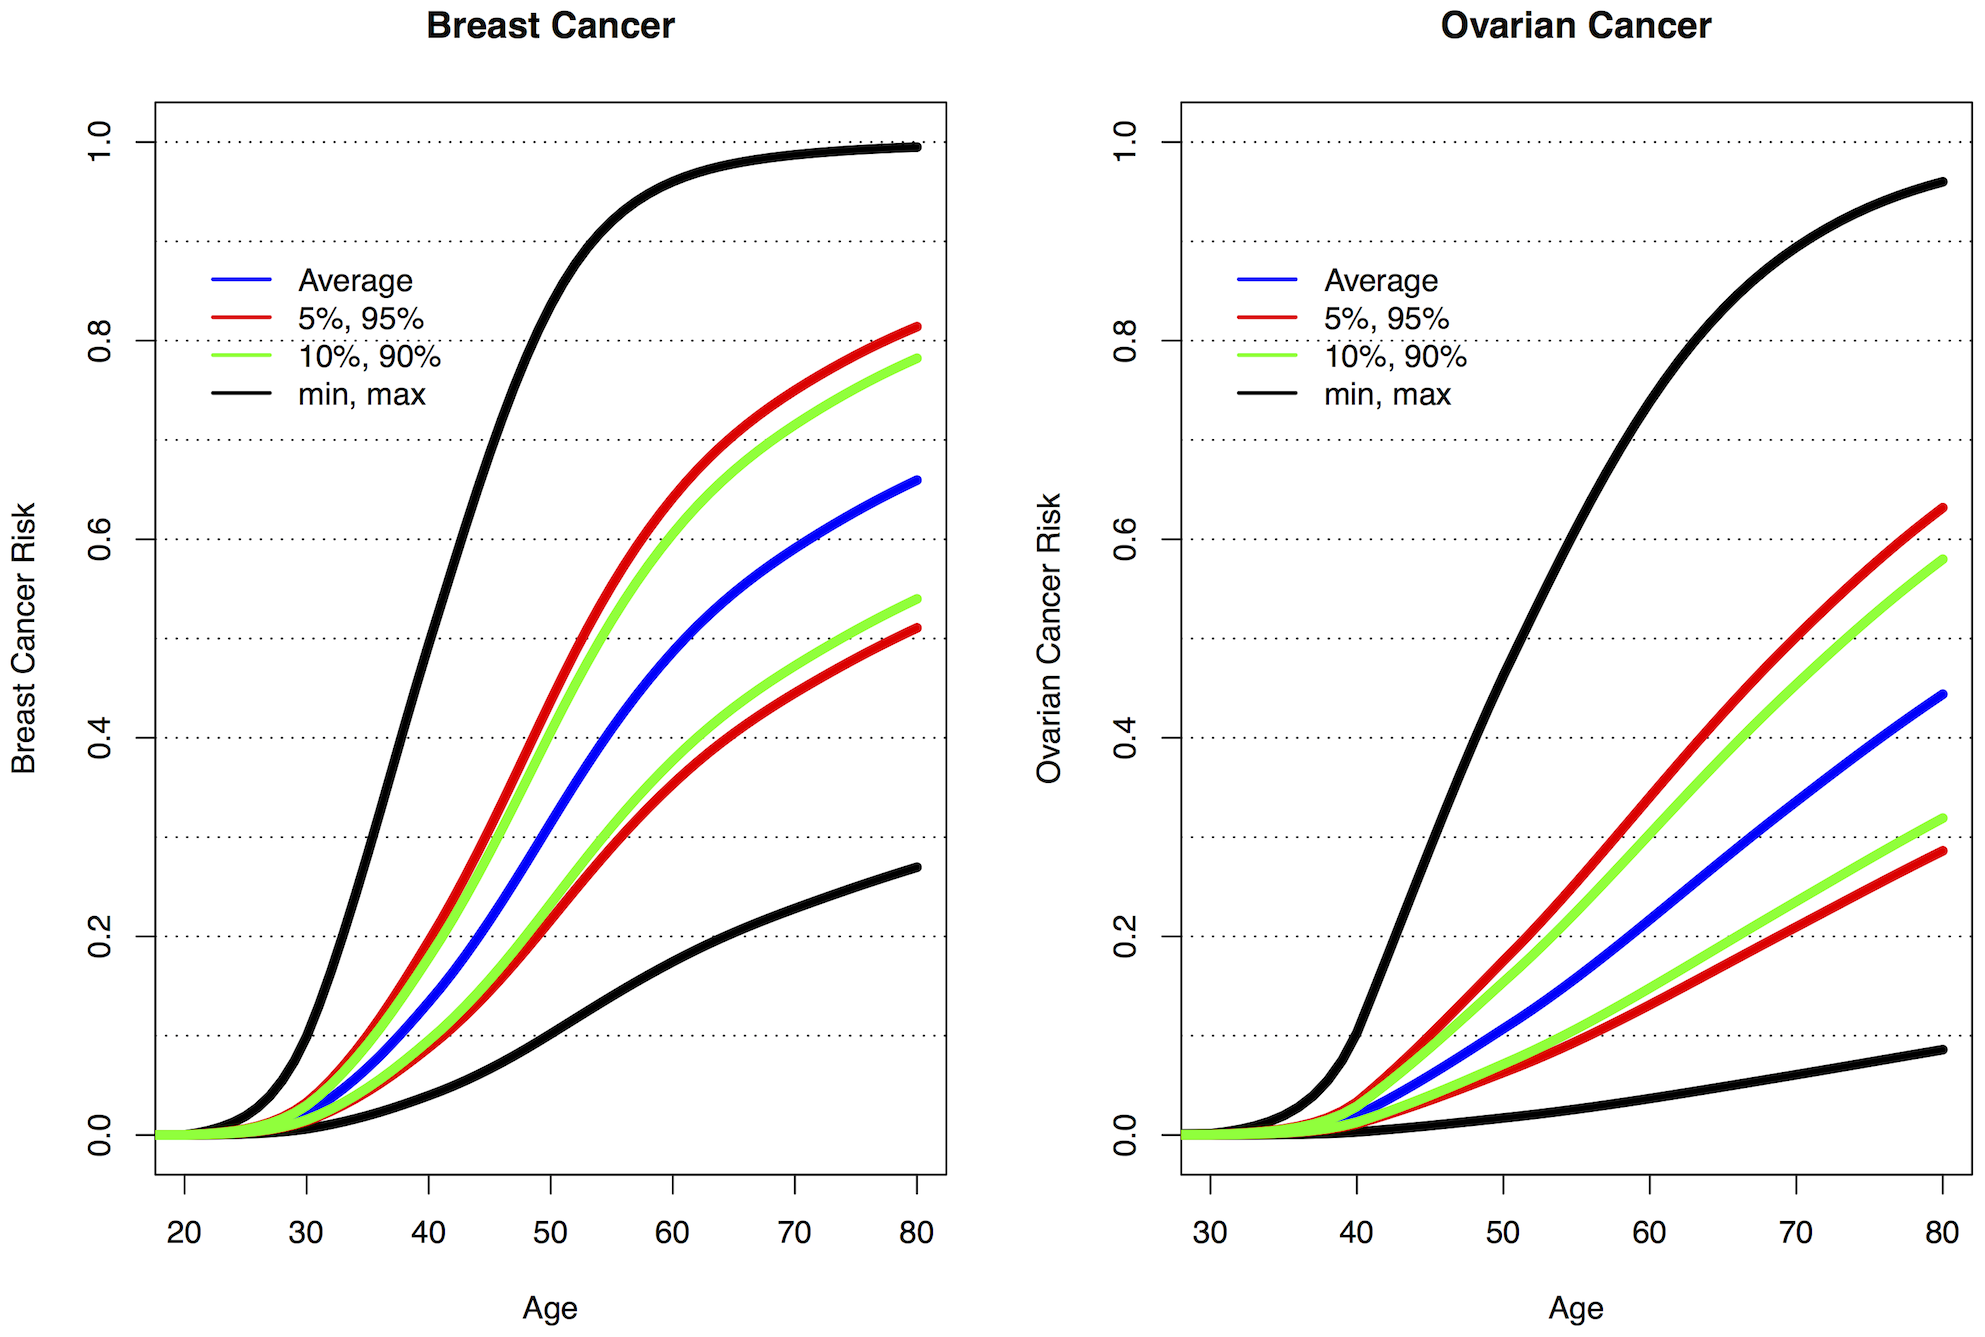 Predicted breast and ovarian cancer absolute risks for <i>BRCA1</i> mutation carriers at the 5<sup>th</sup>, 10<sup>th</sup>, 90<sup>th</sup>, and 95<sup>th</sup> percentiles of the combined SNP profile distributions.